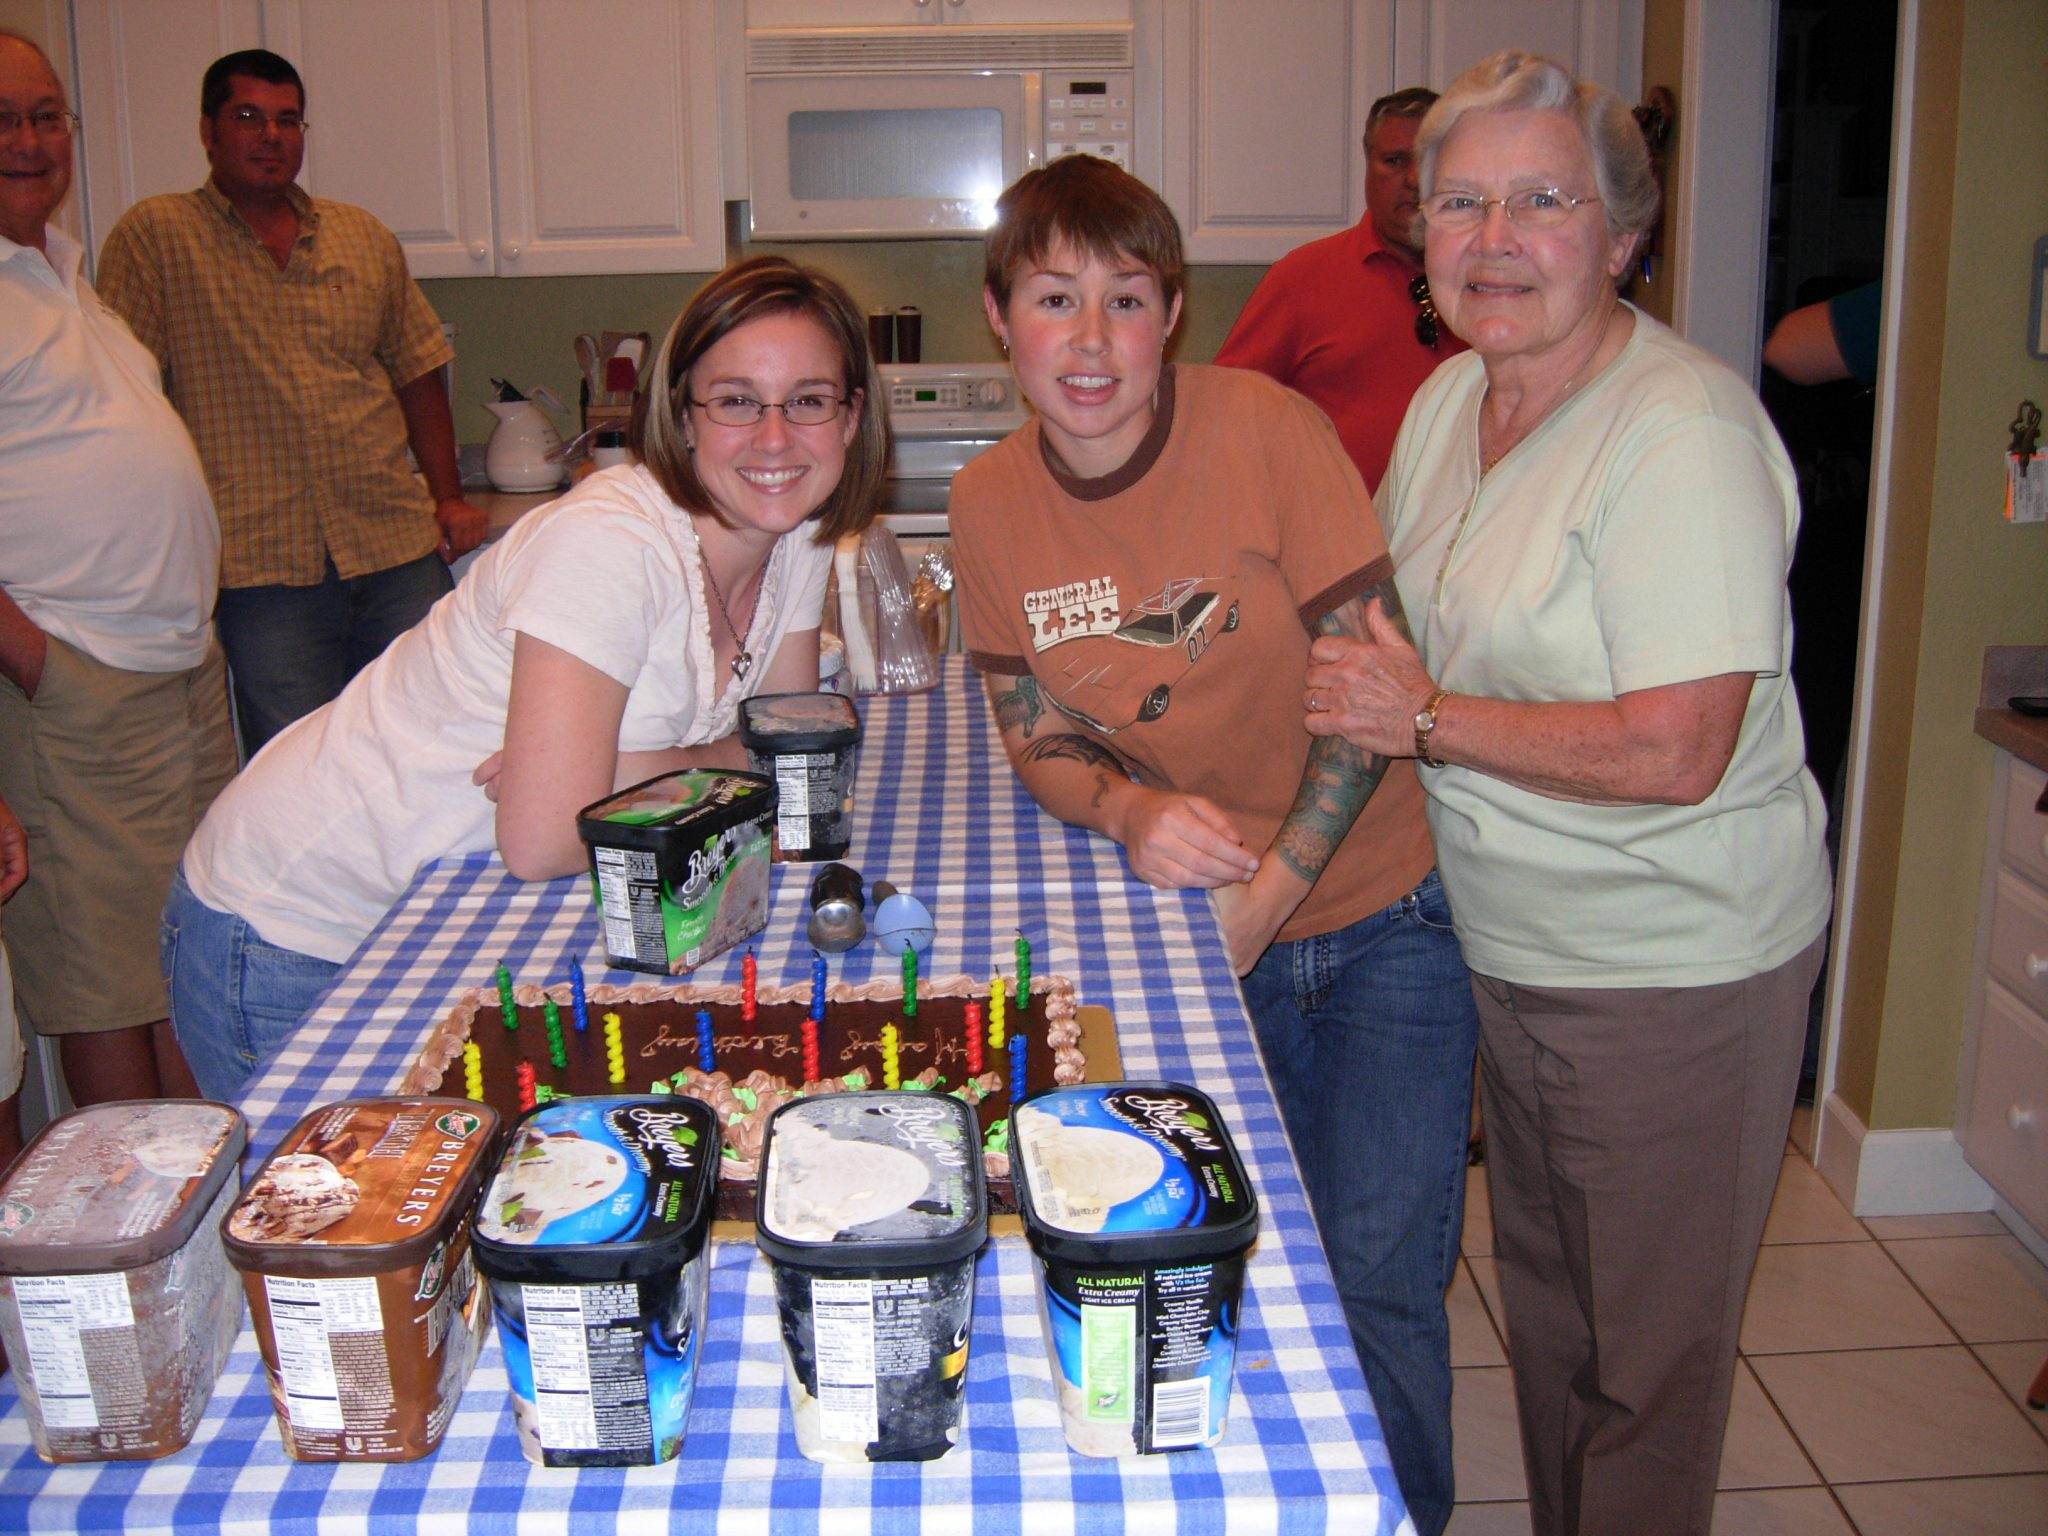 Grandma celebrating her 80th birthday, along with her granddaughters, Carrie and Kelly.